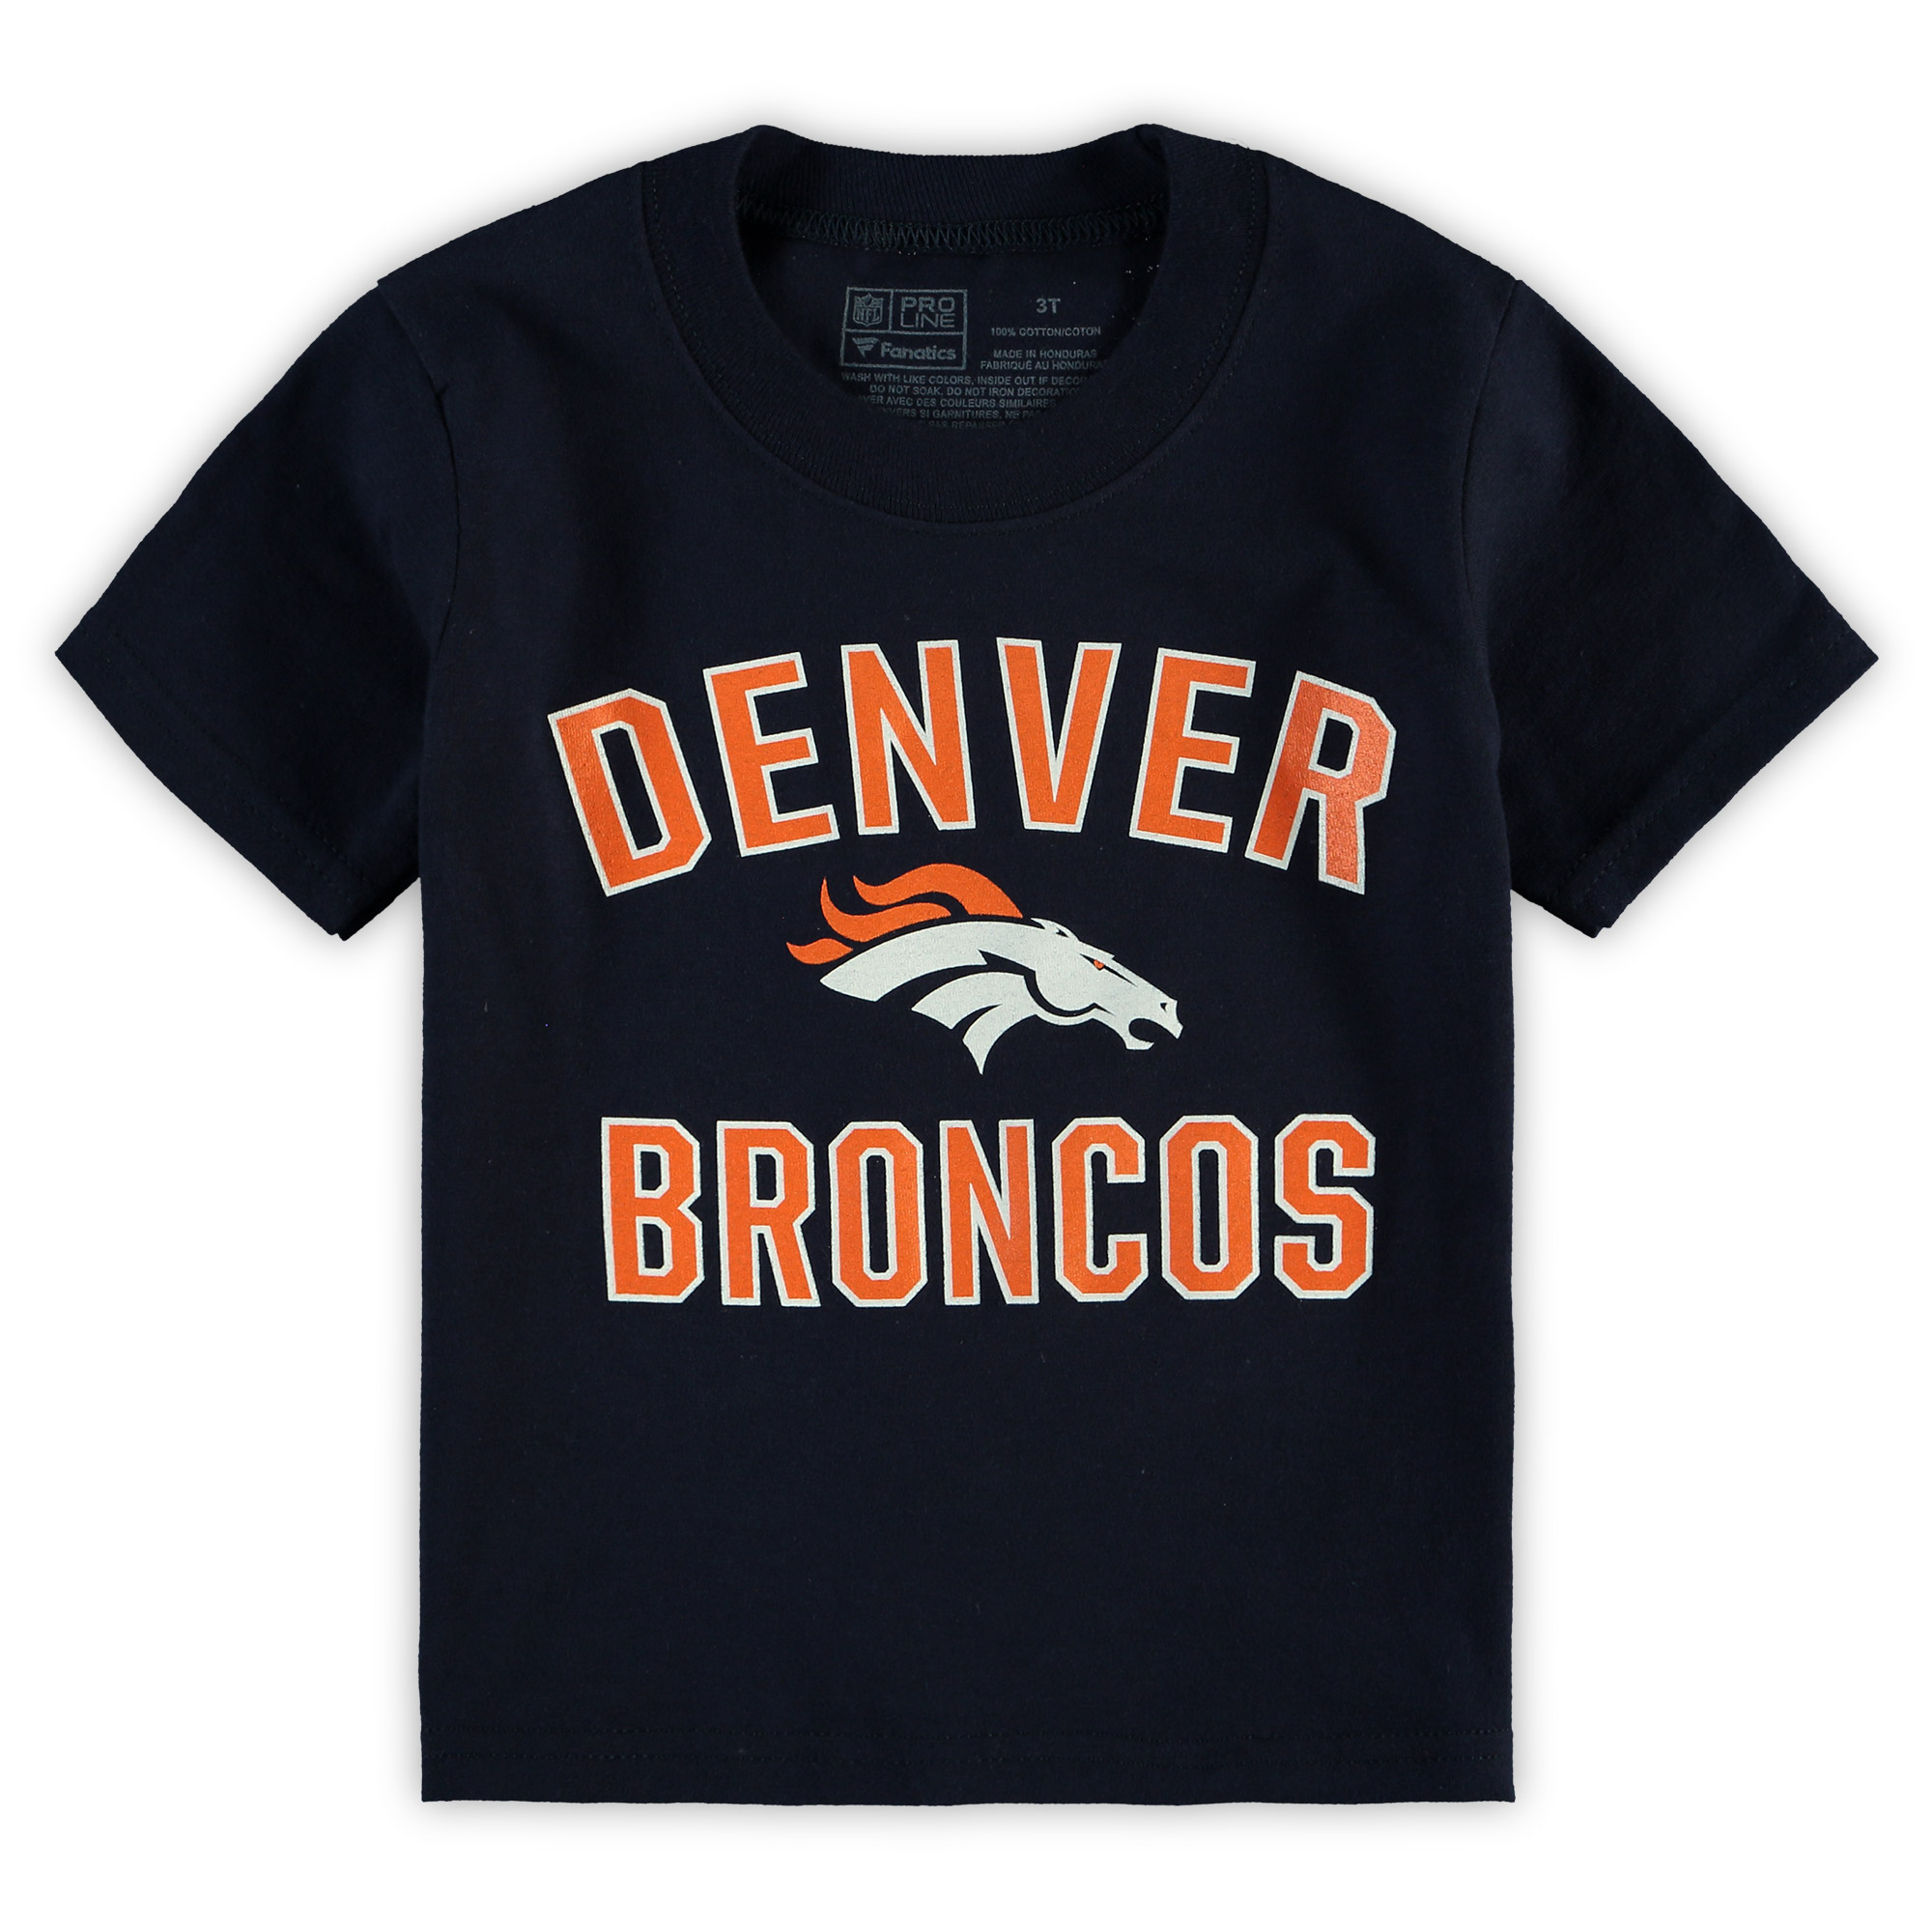 Denver Broncos NFL Pro Line by Fanatics Branded Toddler Team Victory Arch T-Shirt - Navy